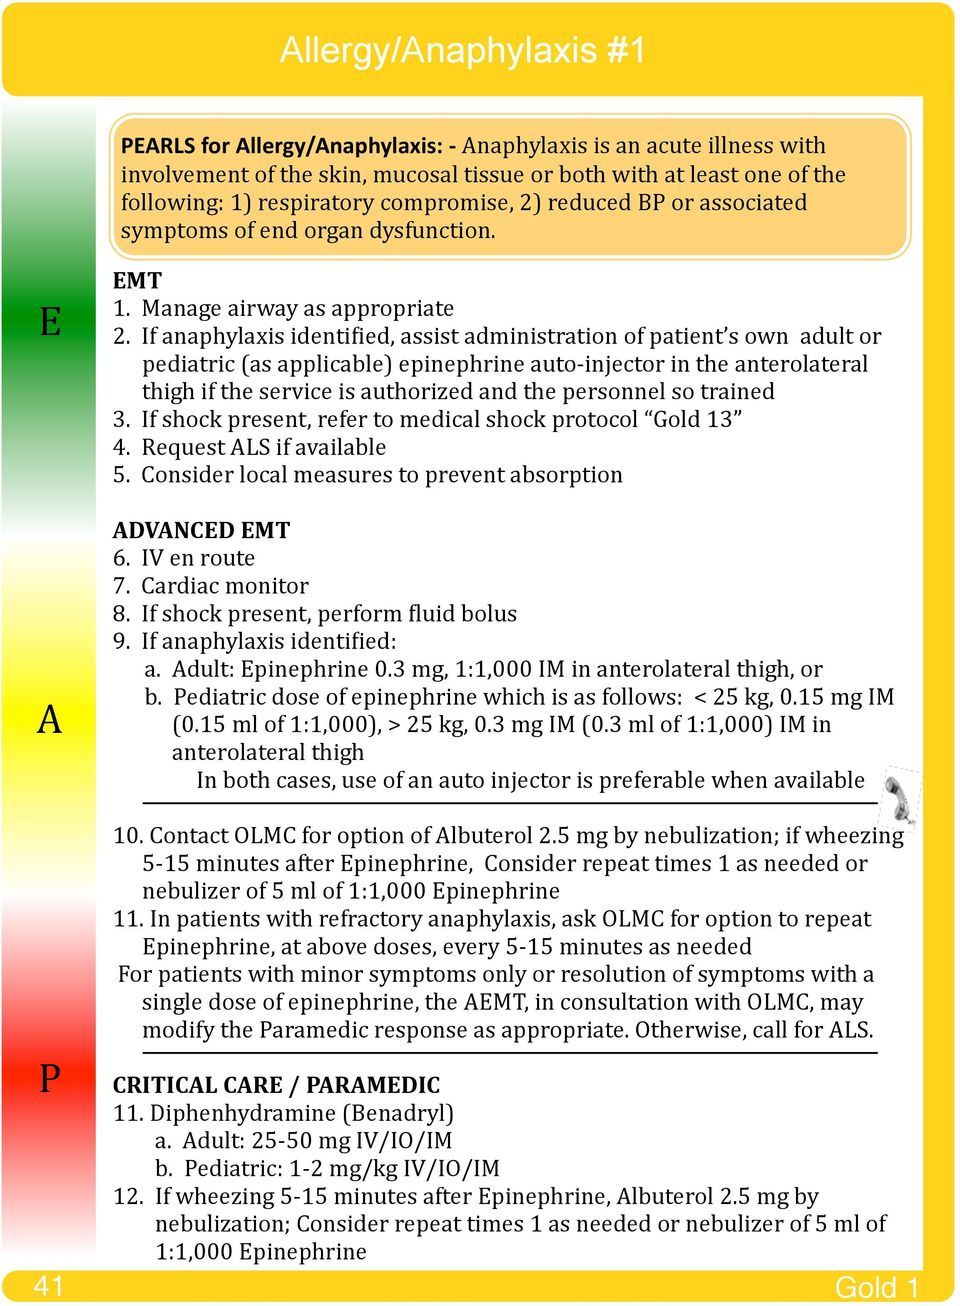 If anaphylaxis identi8ied, assist administration of patient s own adult or pediatric (as applicable) epinephrine auto- injector in the anterolateral thigh if the service is authorized and the